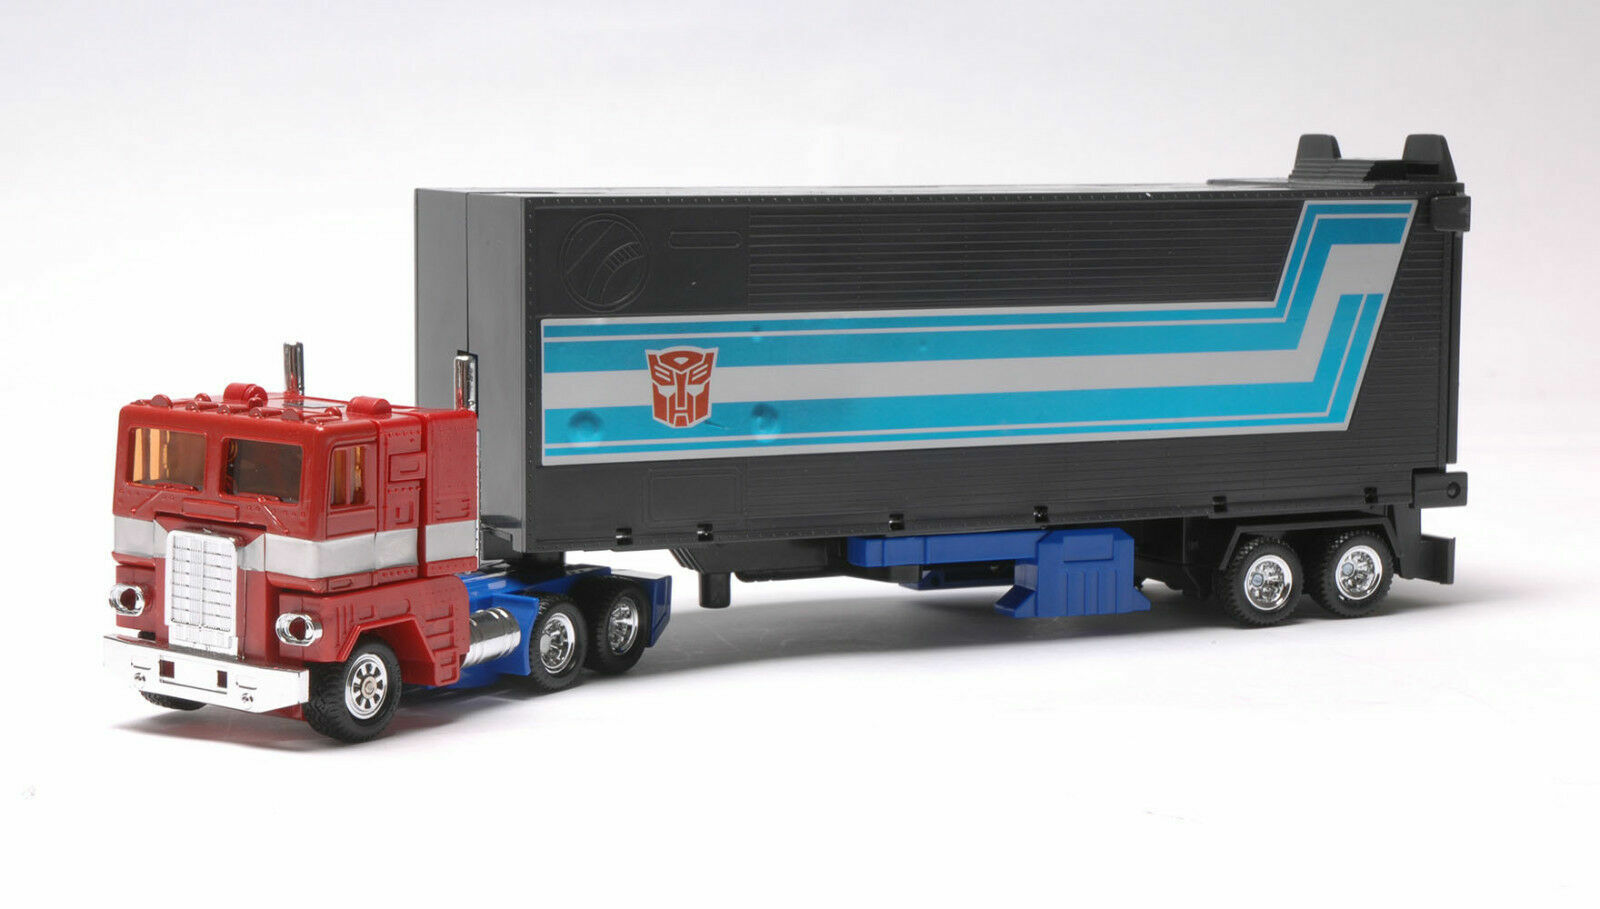 Transformers Optimes Prime G1 transformers Reissue Pearl Red Black AutoBot Toys